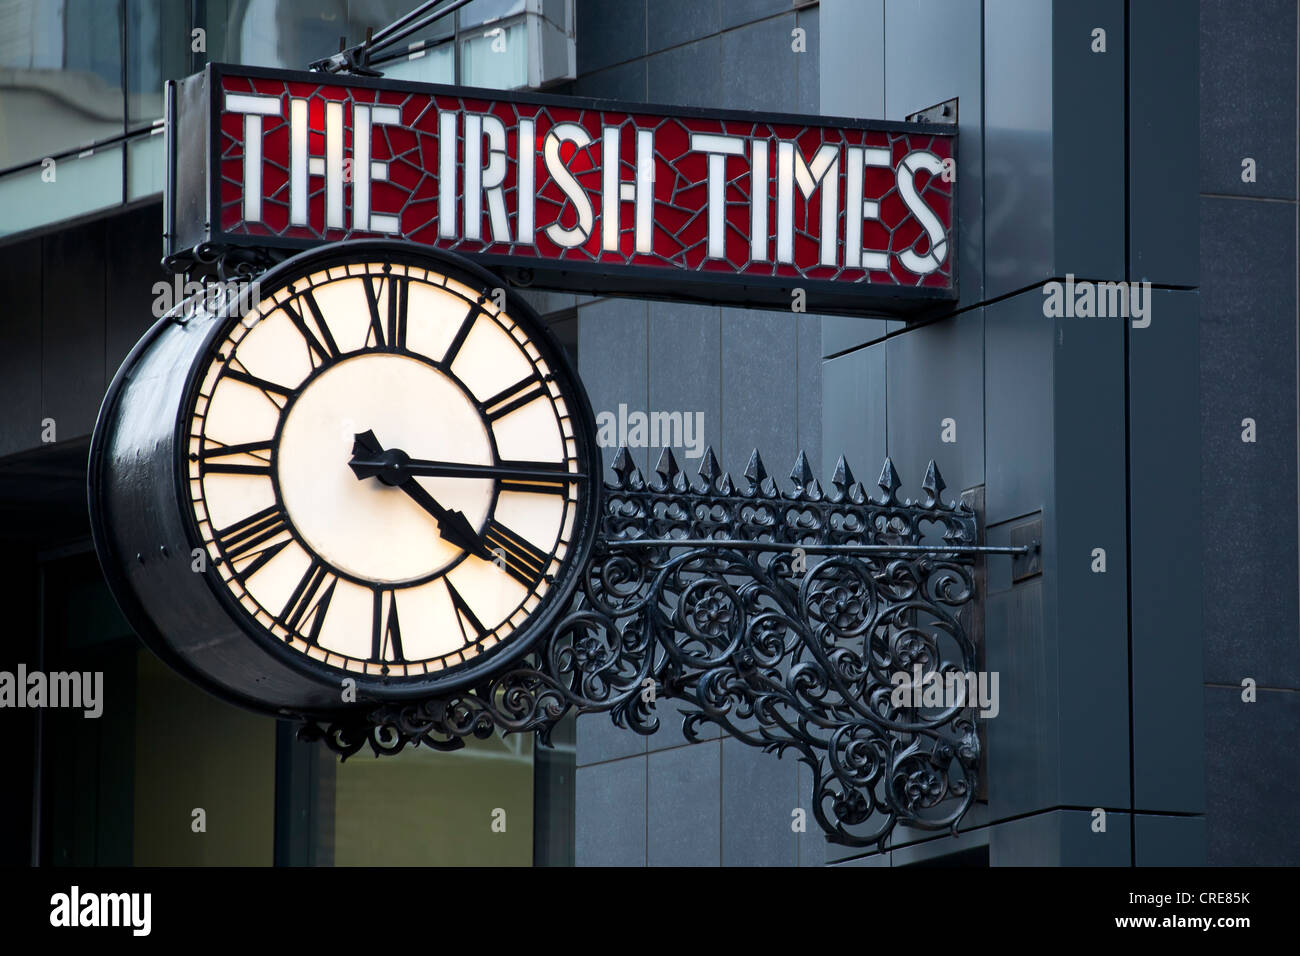 Clock on the editorial office and administration of the media company The Irish Times, Dublin, Ireland, Europe - Stock Image